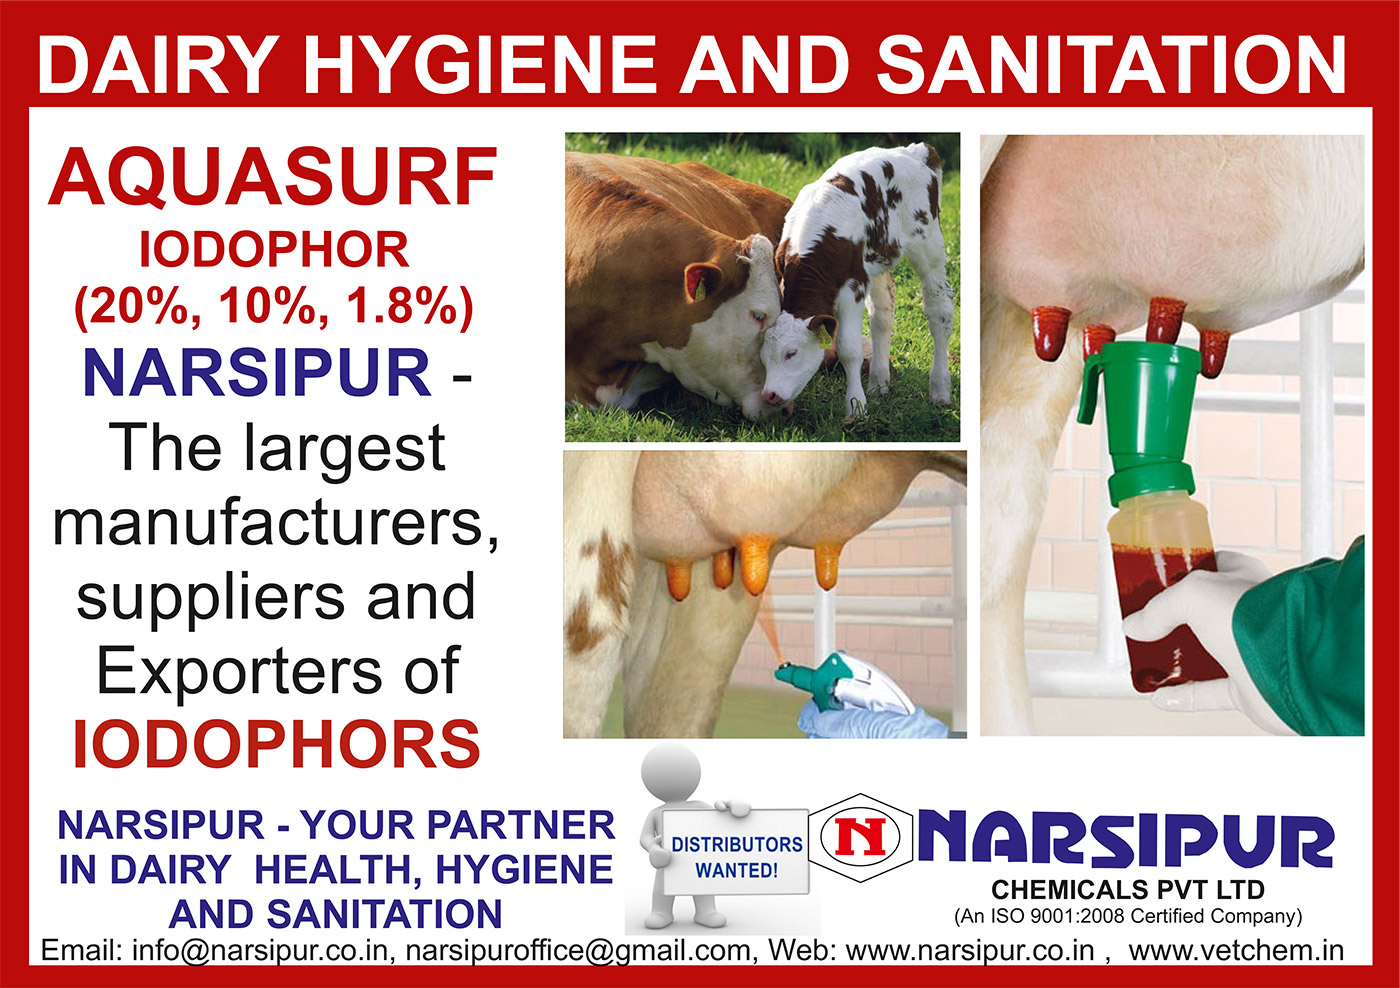 Narsipur Chemicals Private Limited - Your Partner In Biosecurity, Health, Hygiene and Sanitation